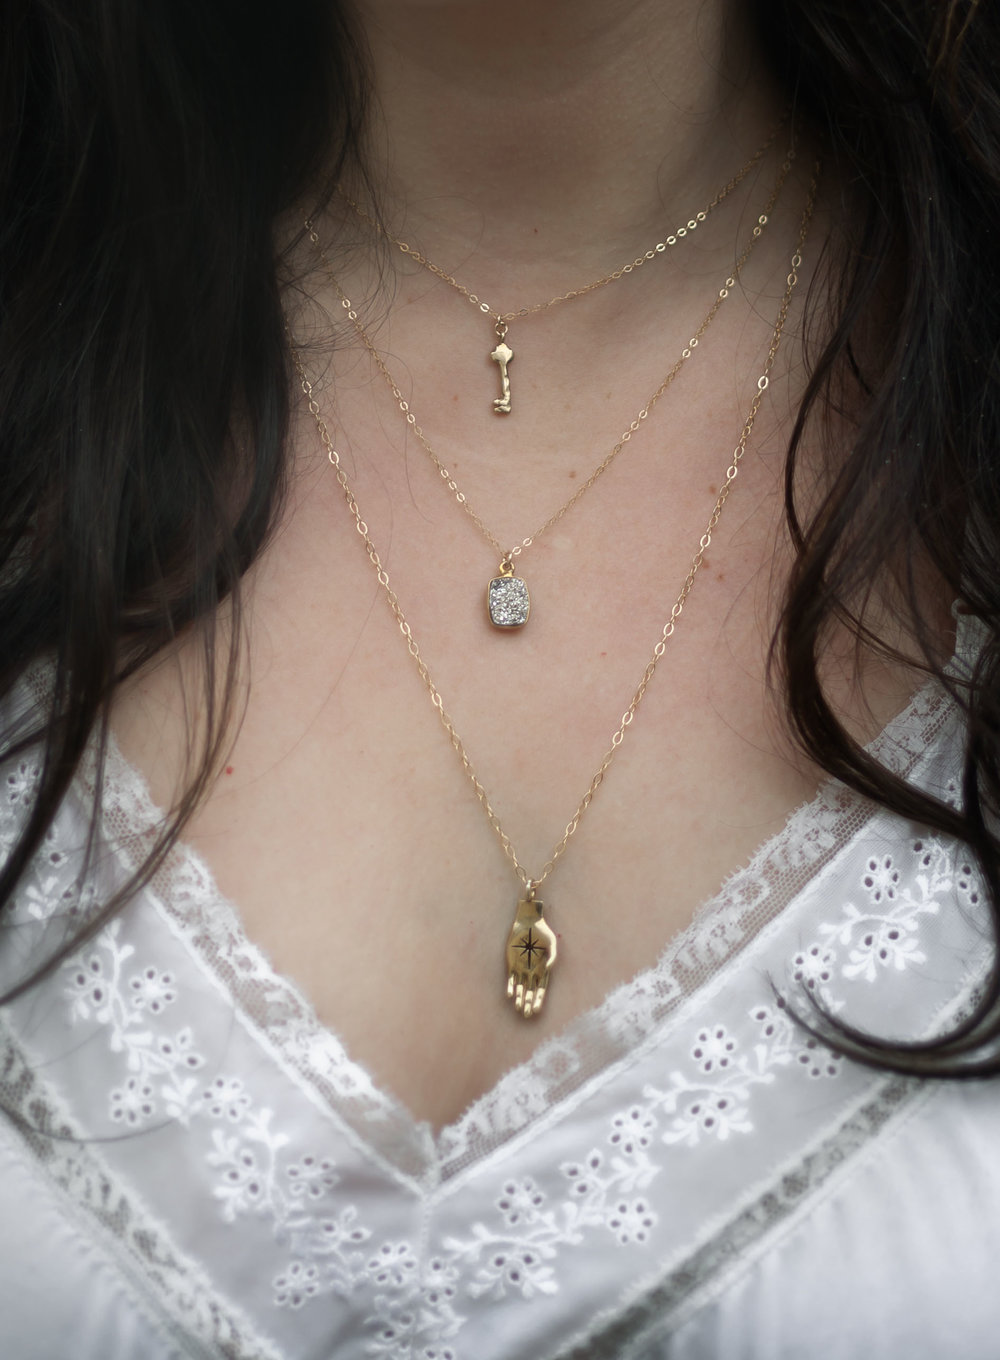 Carissa, in a trio of necklaces. - My friend Carissa came over this February afternoon to model the Handful of Magic, Druzy & Tiny Key Necklaces, plus some magical earrings! Loved layering all of these…